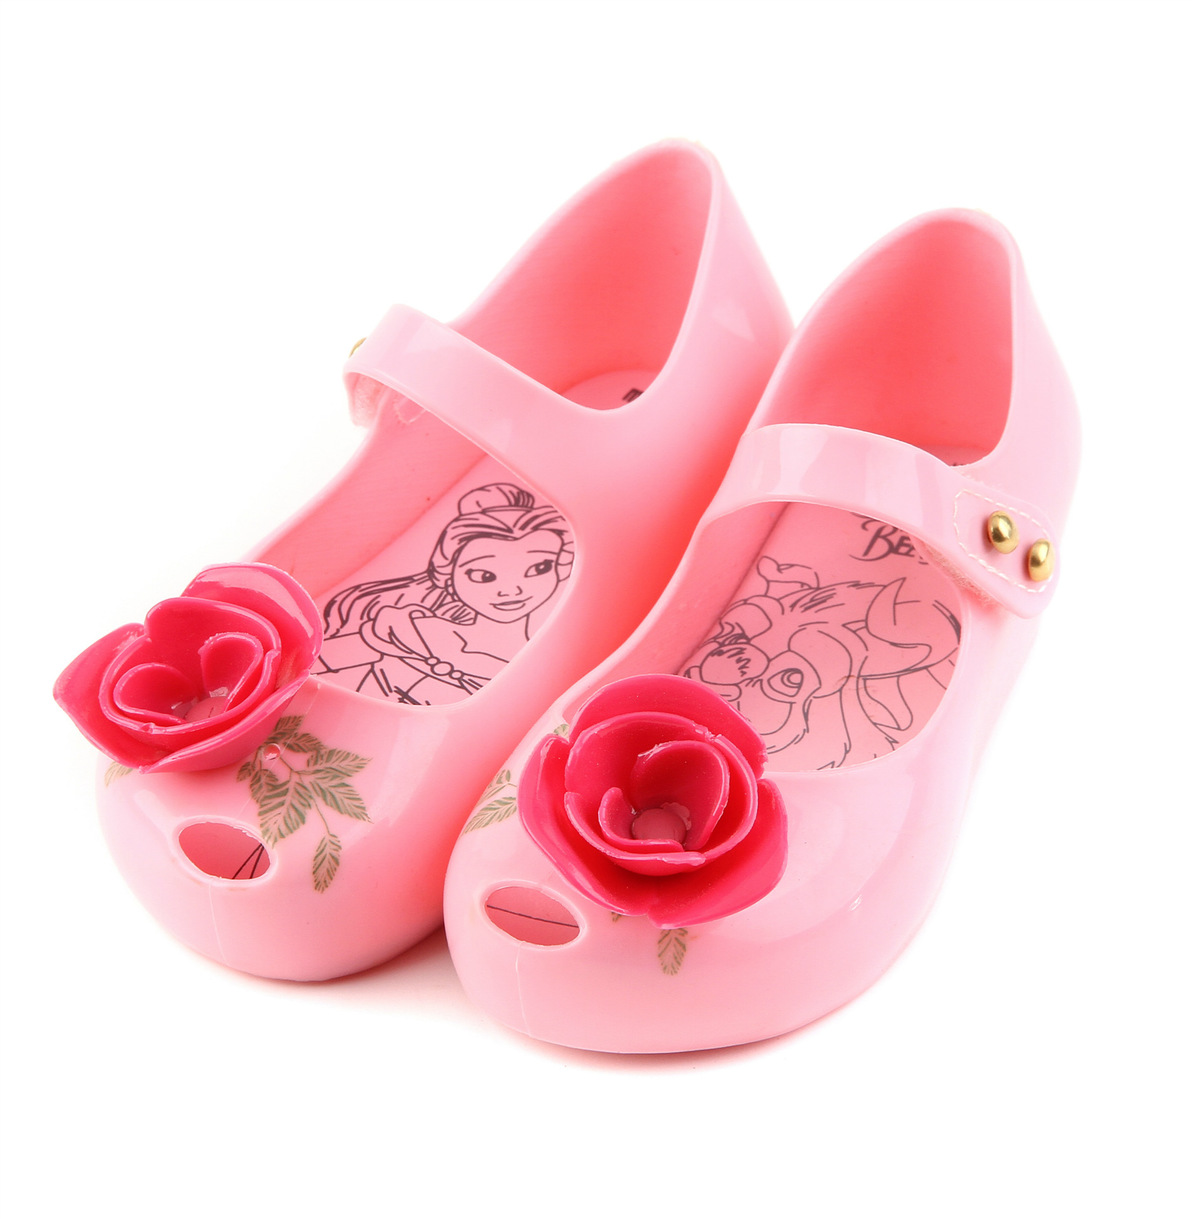 Mini Melissa Children Fahsion Kids Casual Cute Princess Flowers Hollow Rivets Beach Sneaker Clogs Mules Girls Jelly Shoes Sandal